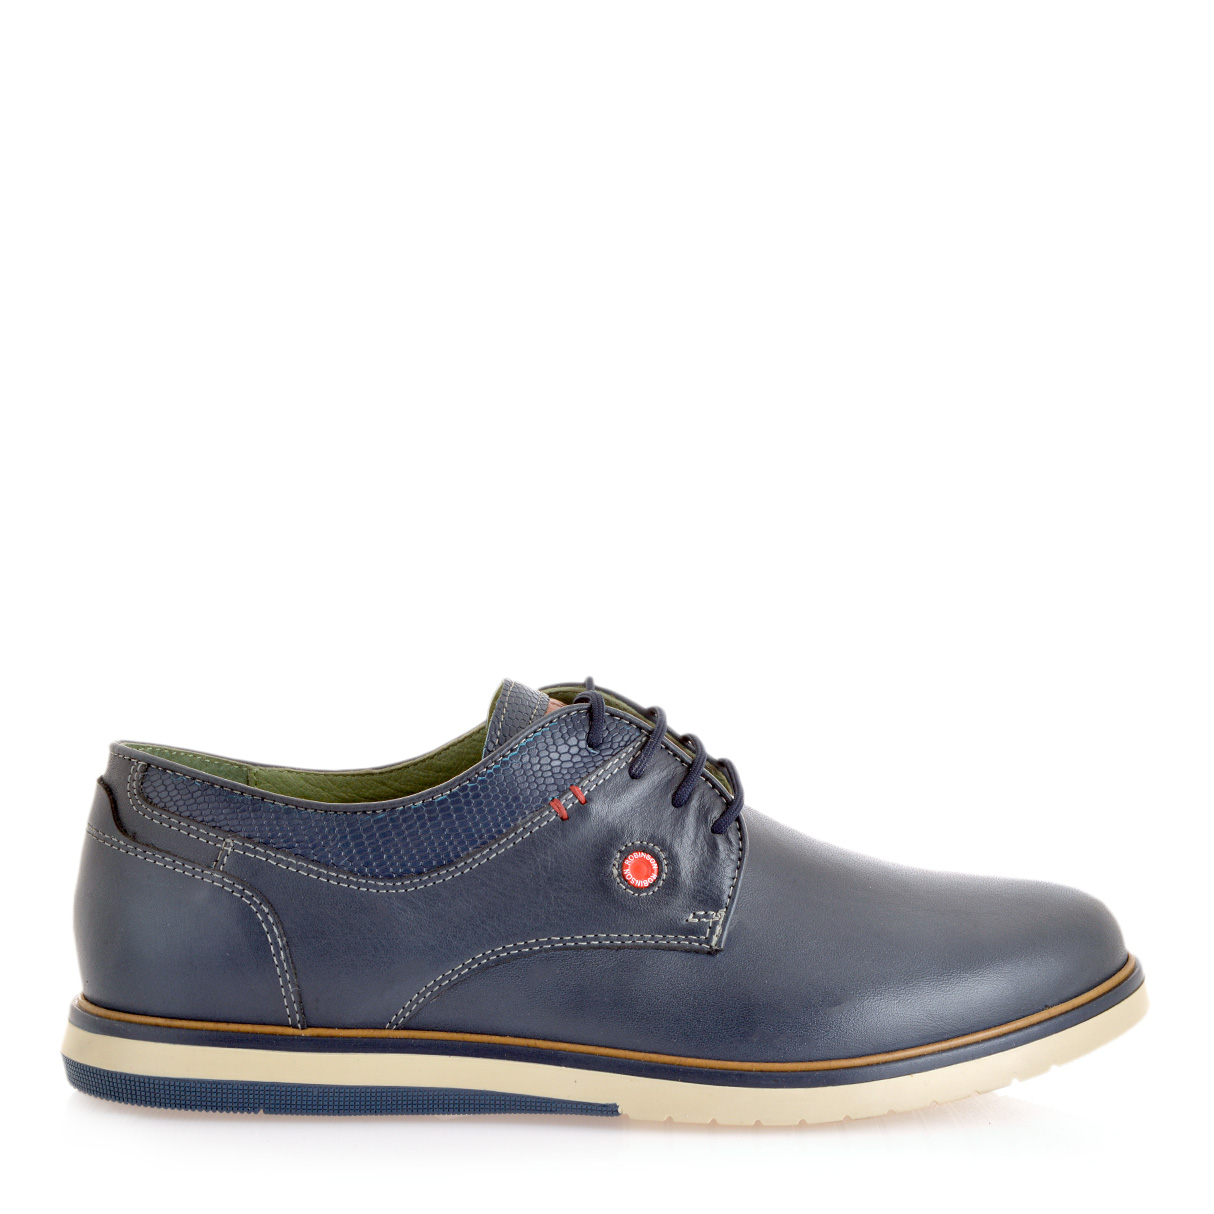 LACE-UP SHOES σχέδιο: G50170511 outlet   ανδρικα   lace up shoes